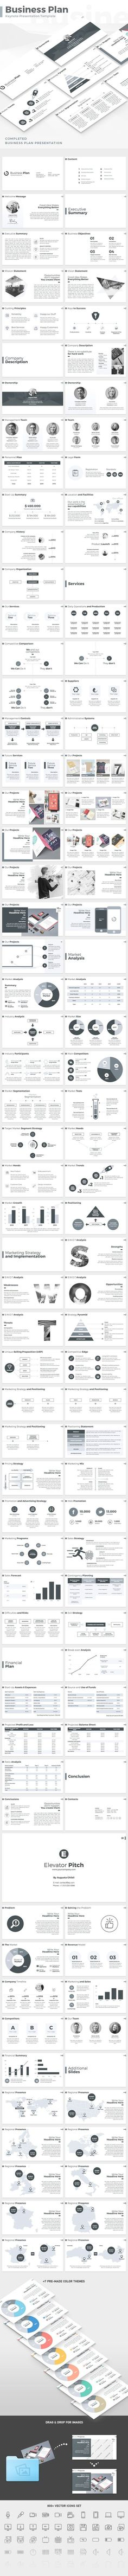 429 best Business Plan Template images on Pinterest in 2018 ...